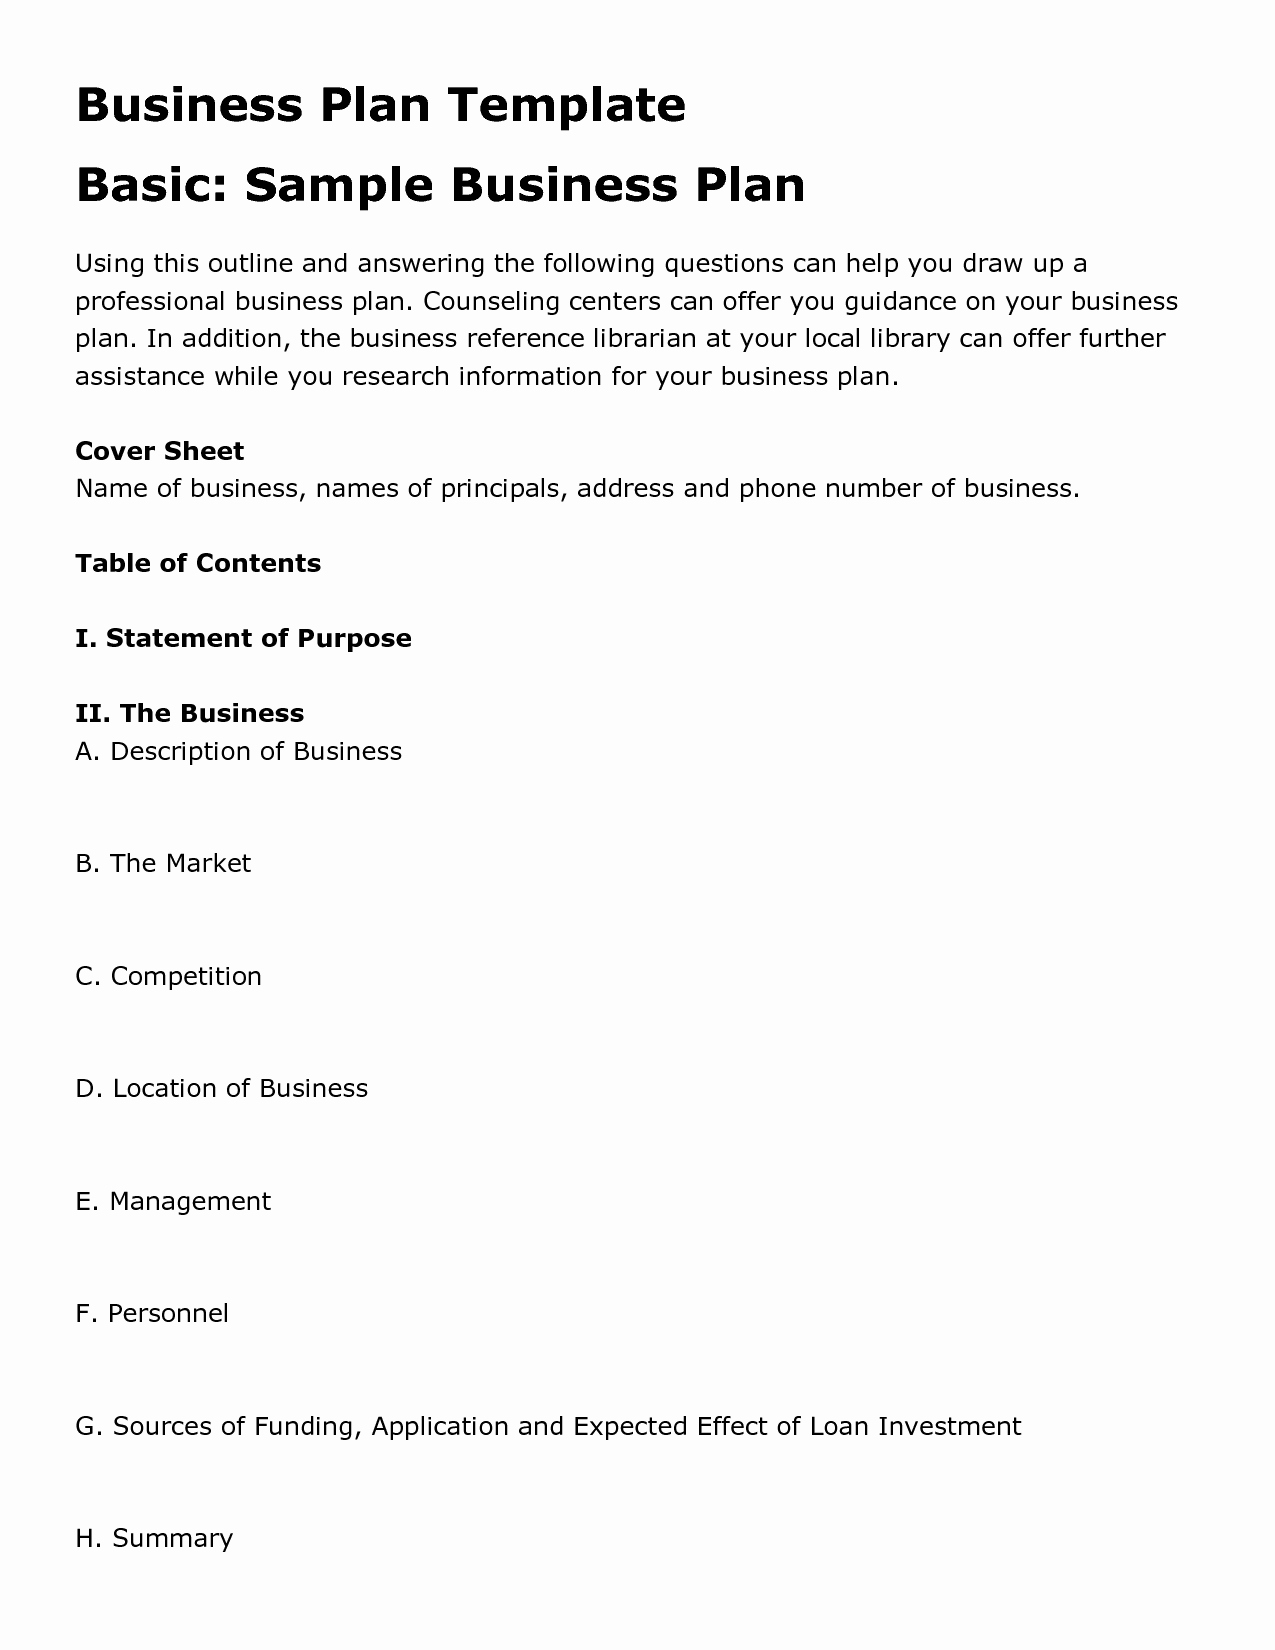 Music Business Plan Template Luxury Simple Business Plan Design Entrepreneur